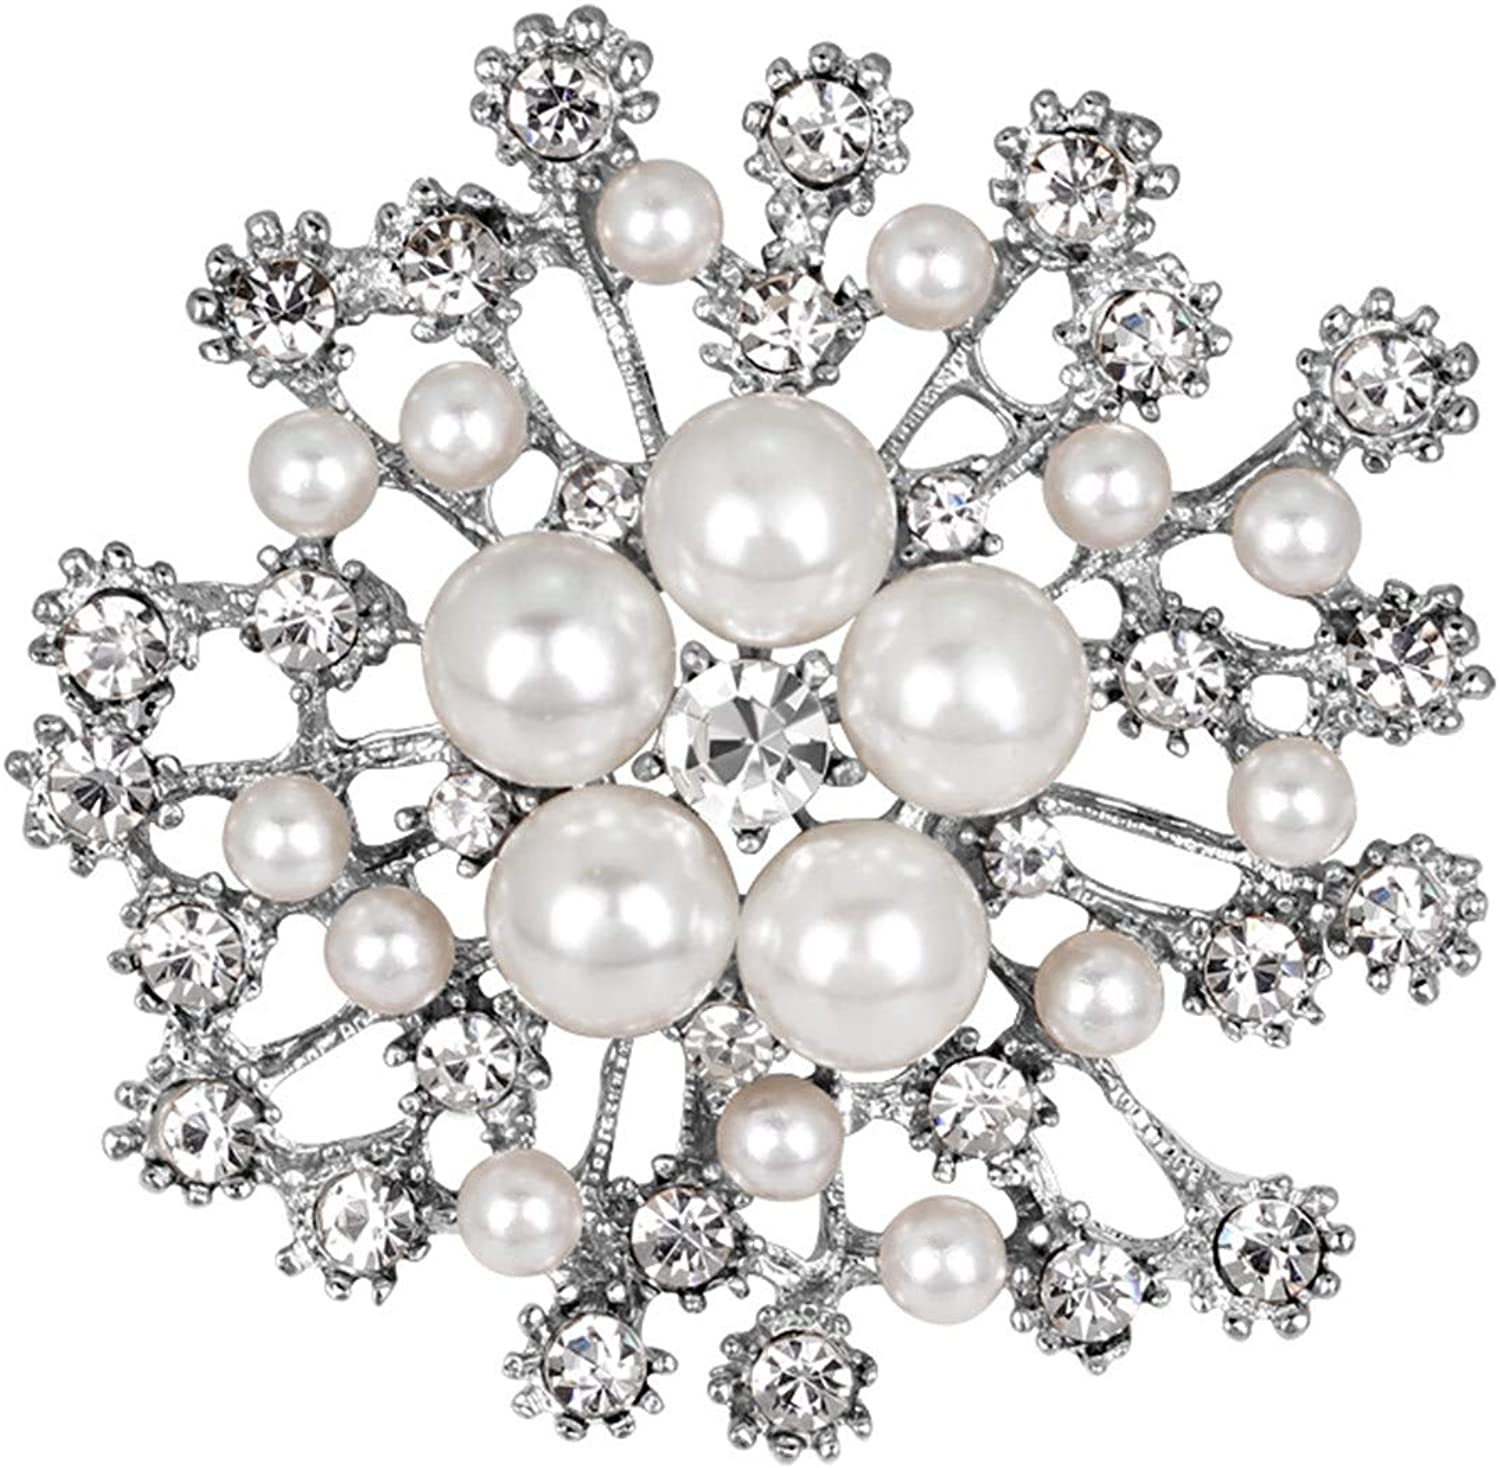 Tennessee526 Ladies Snowflake Faux Year-end gift Pearl New Free Shipping Decor Brooch Rhinestone